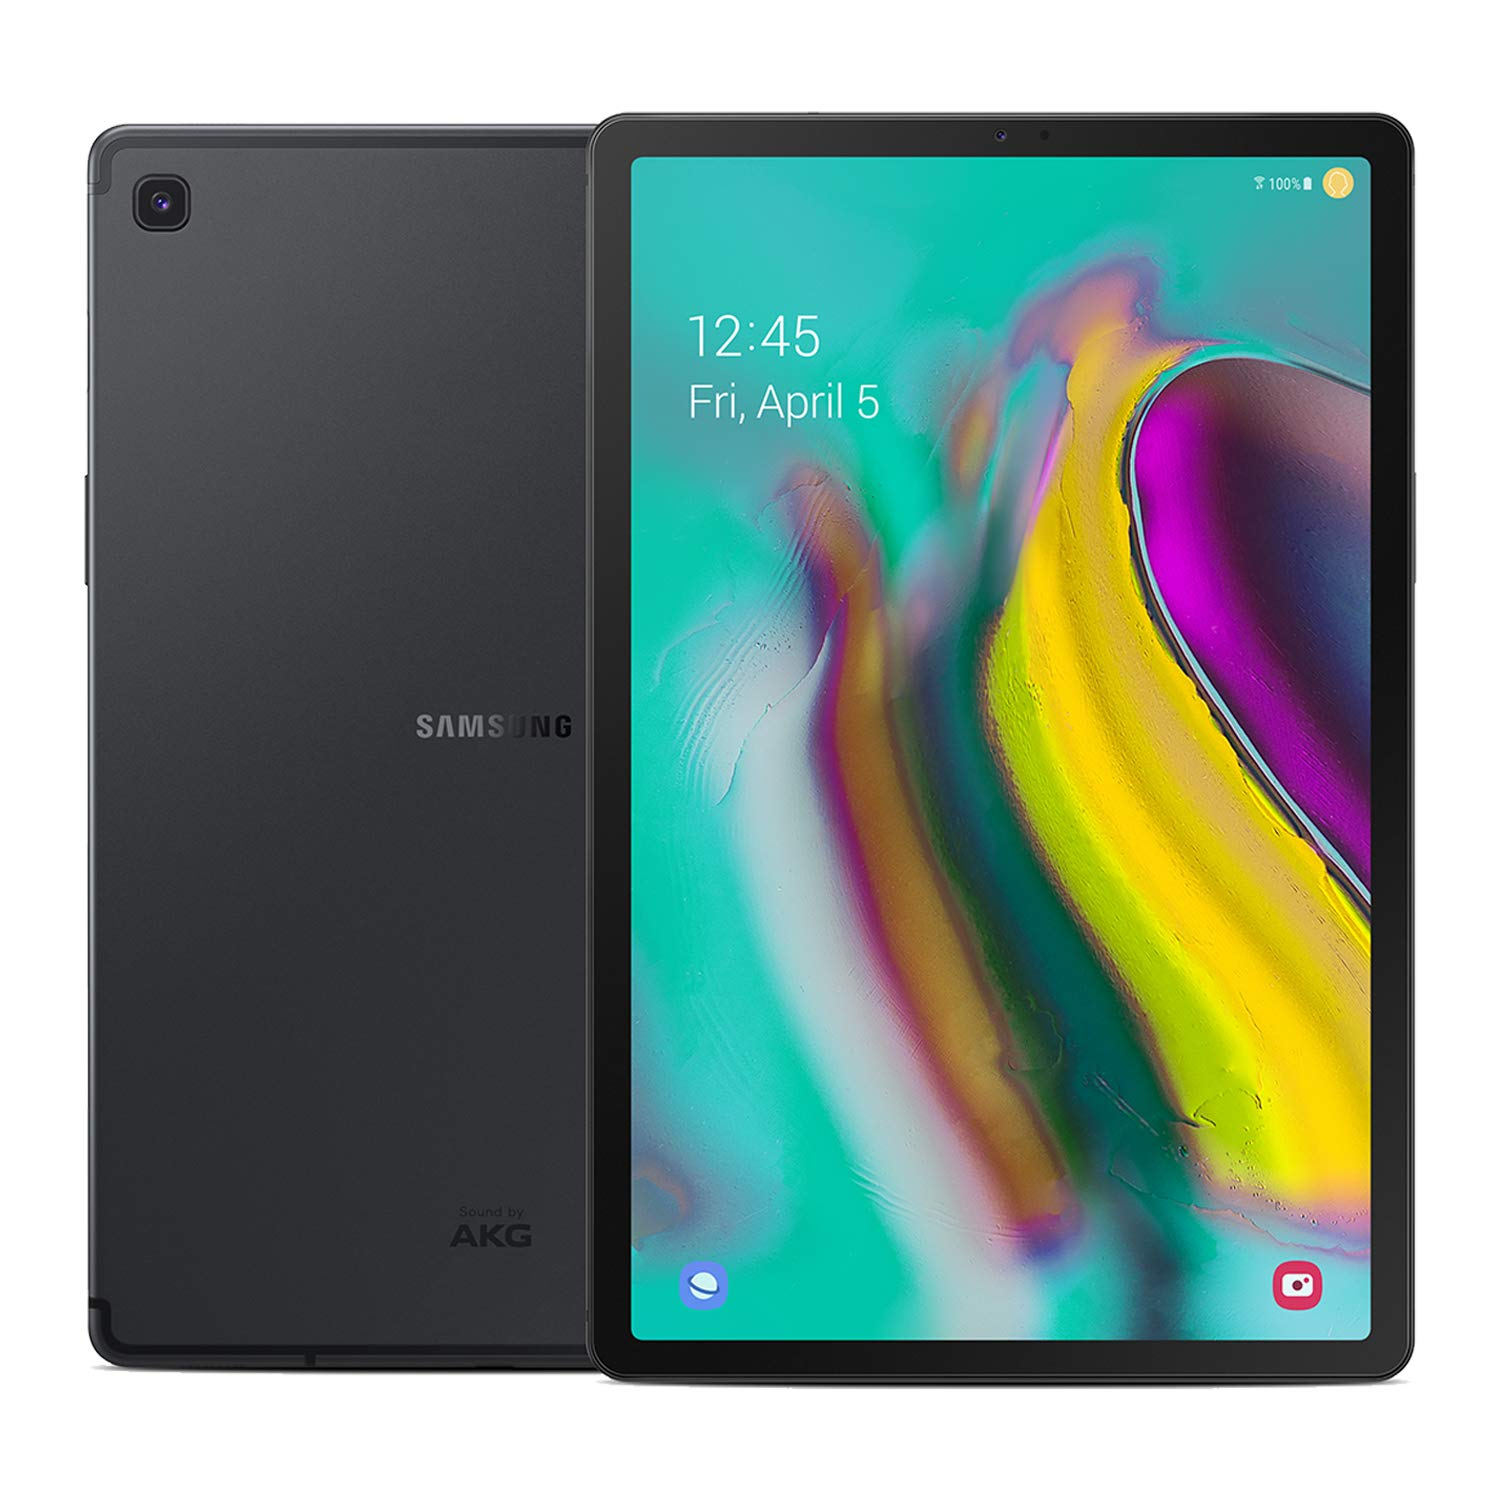 The Best Tablet For 2019: 2019 Samsung Galaxy Tab S5e 10.5-inch